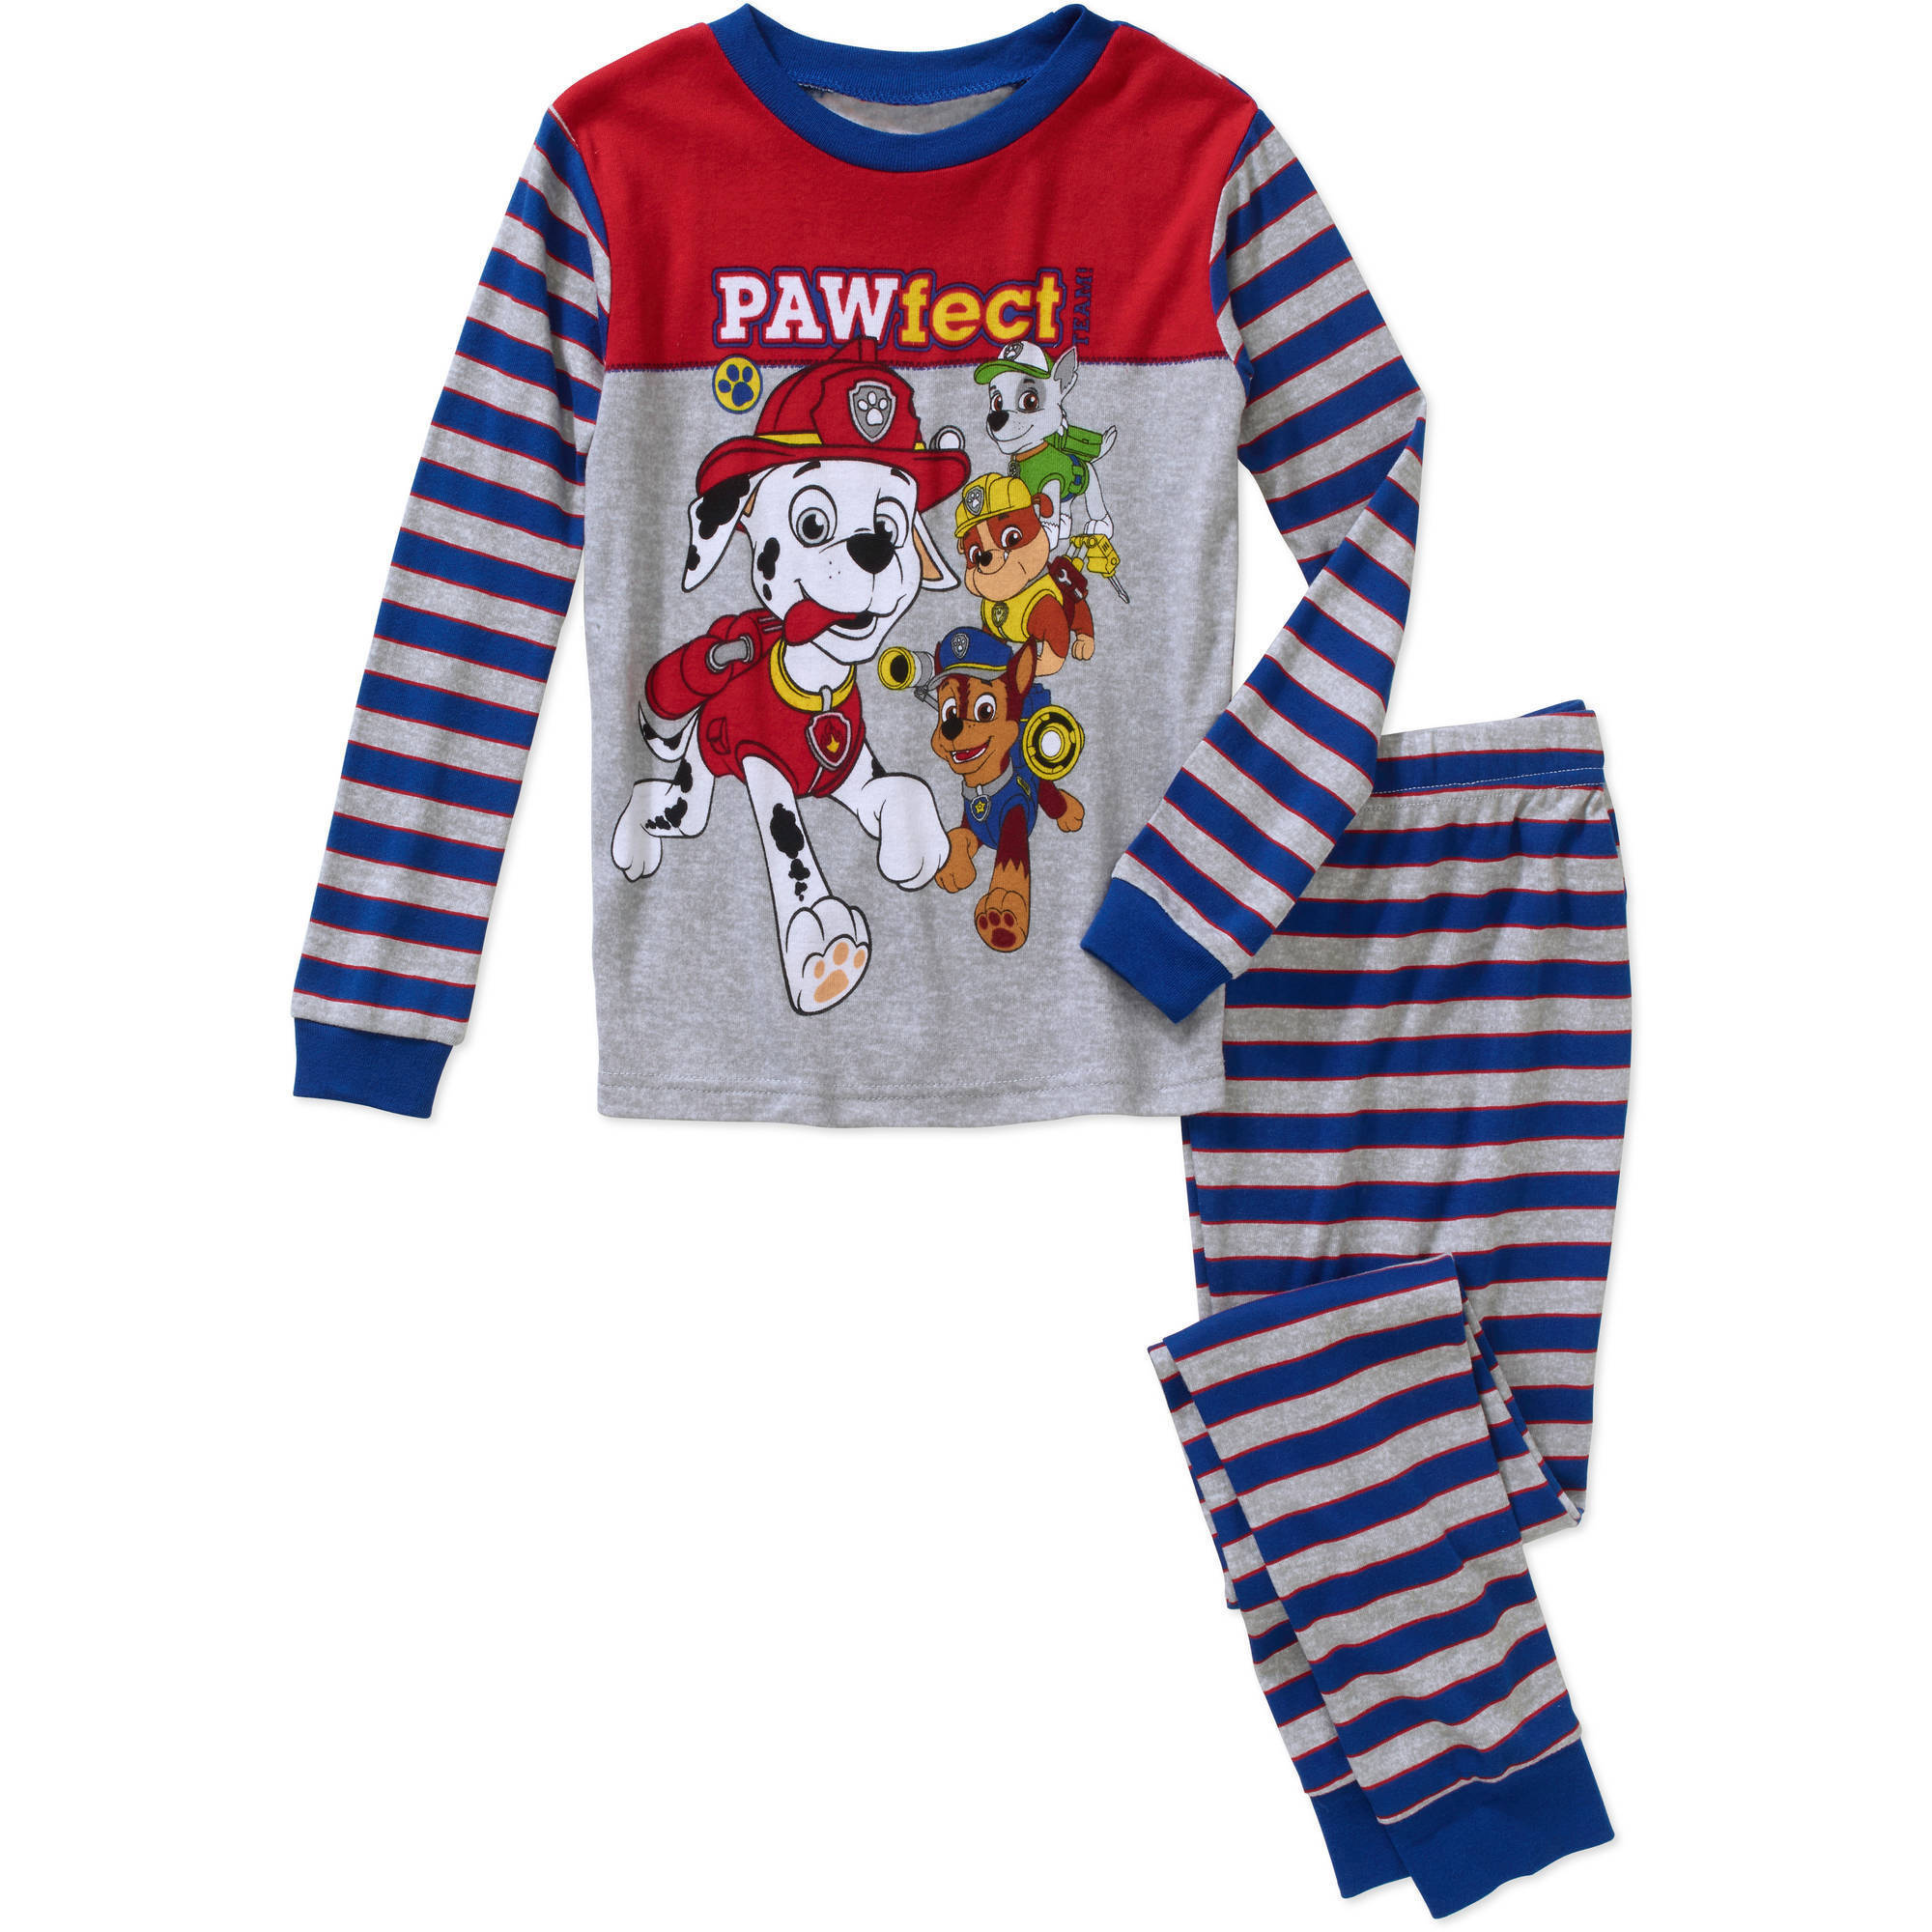 Boys' Licensed 2 Piece Cotton Pajama Sleepwear Set, Available in 4 Characters